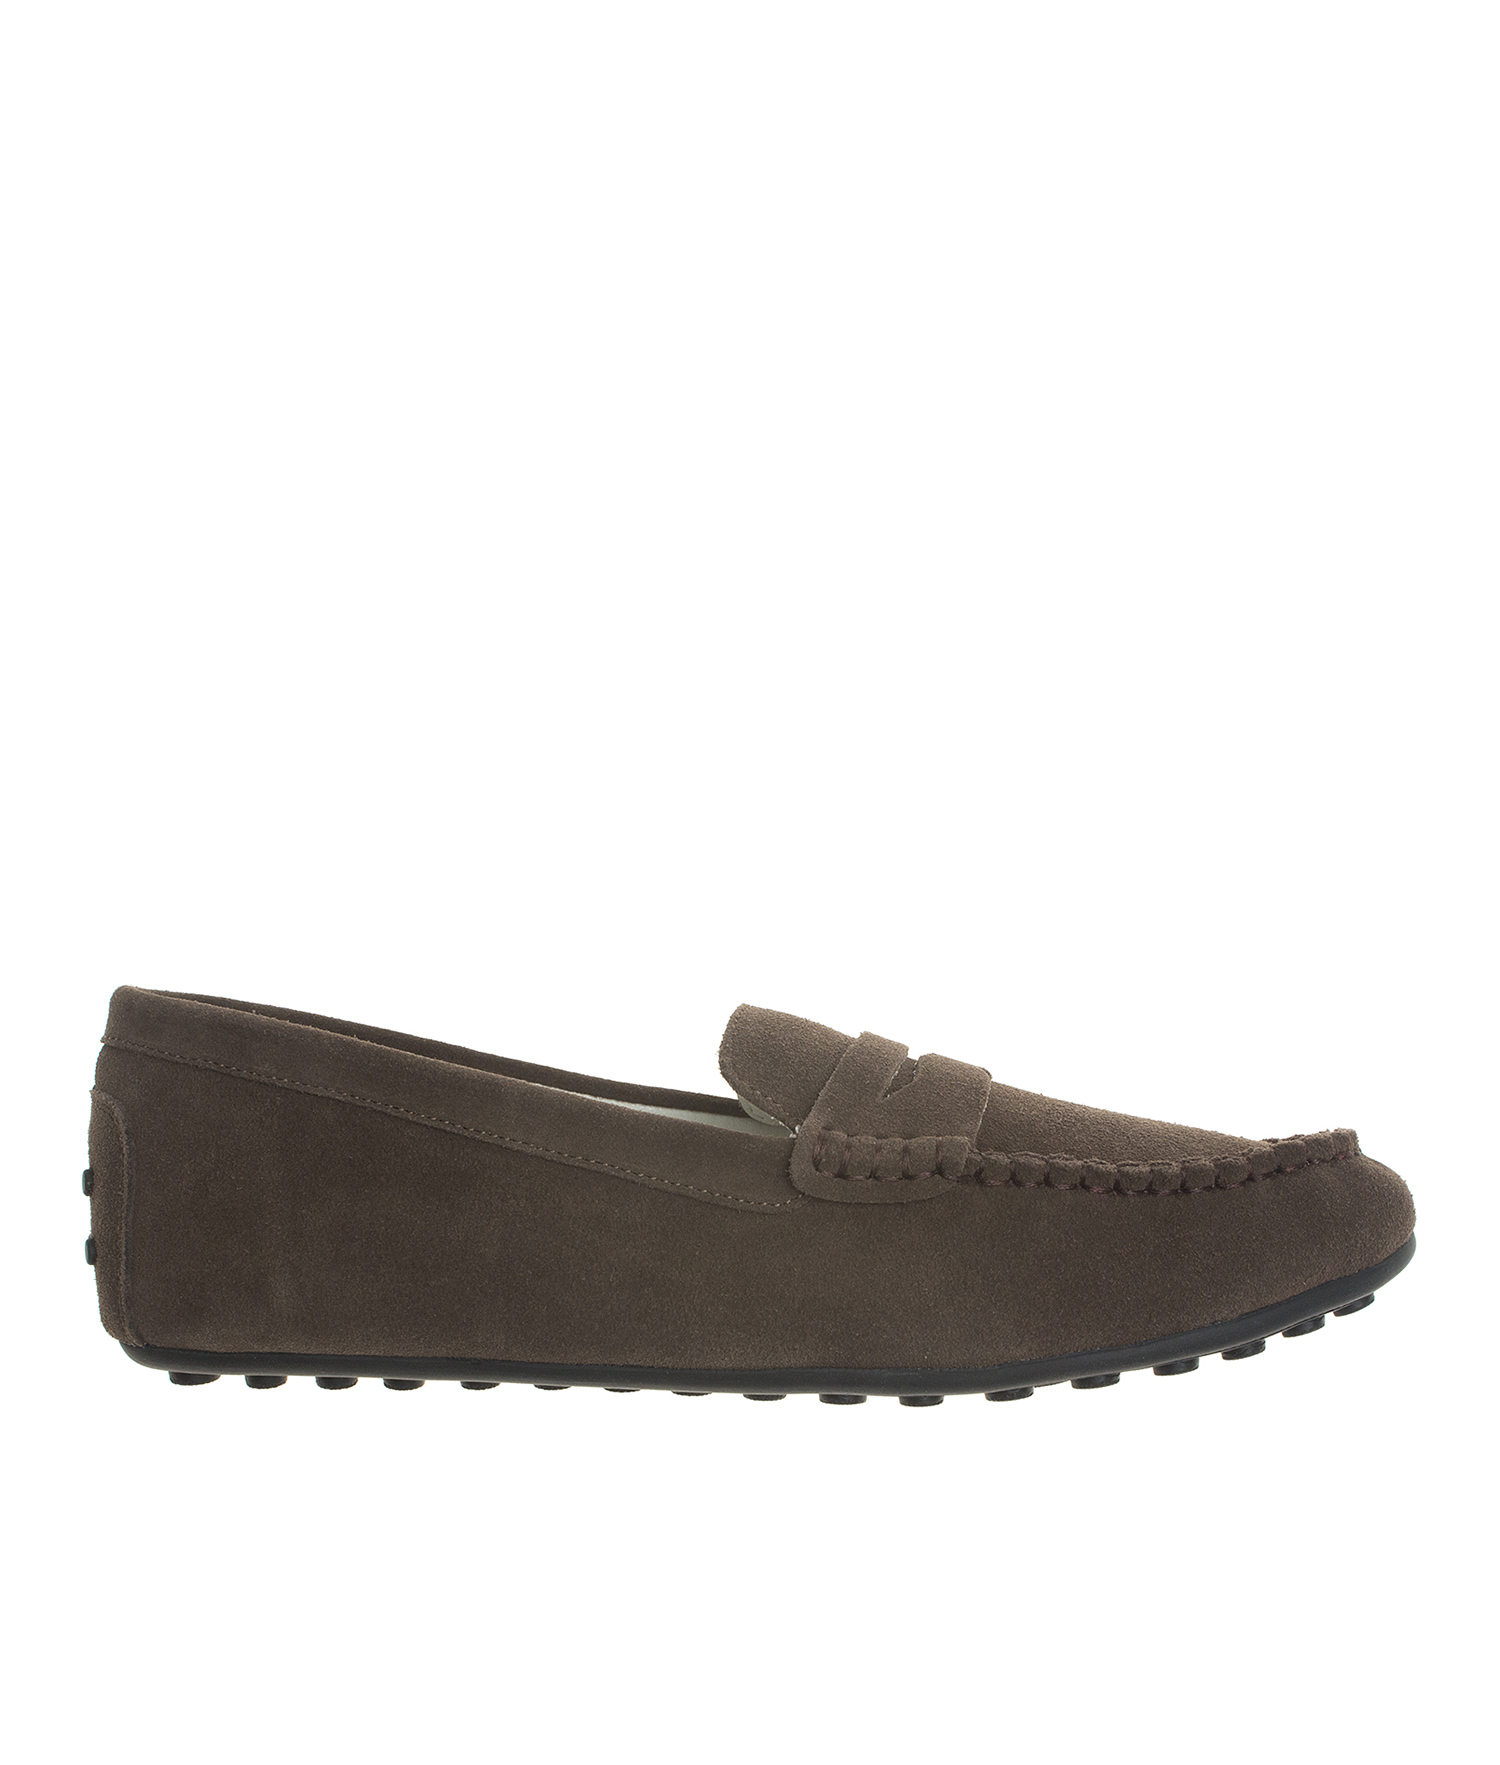 Vintage Land Rover Mens Loafer Driving Moccasin Brown: Classic Suede Leather Driving Shoes Penny Loafer Moccasin